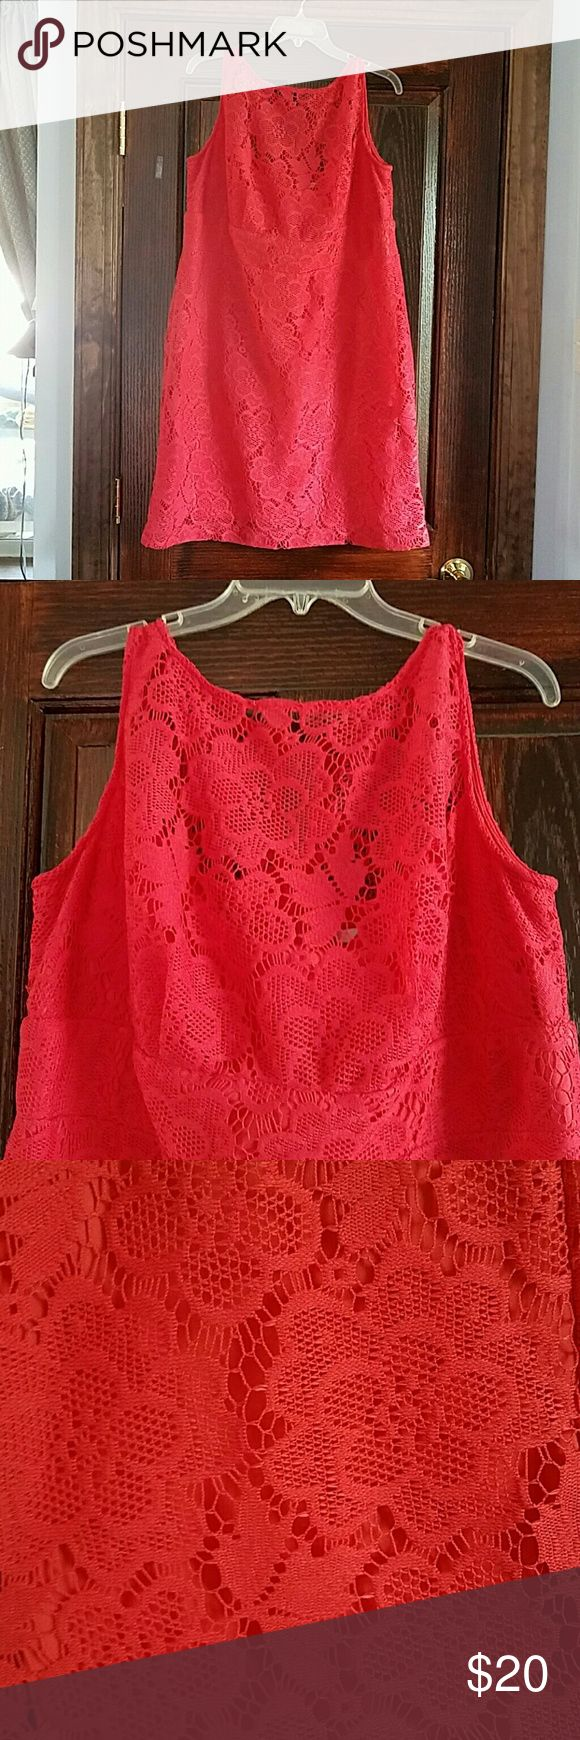 Coral sun dress Crochet coral sundress with illusion neckline, knee length, new used !! studio 1 Dresses